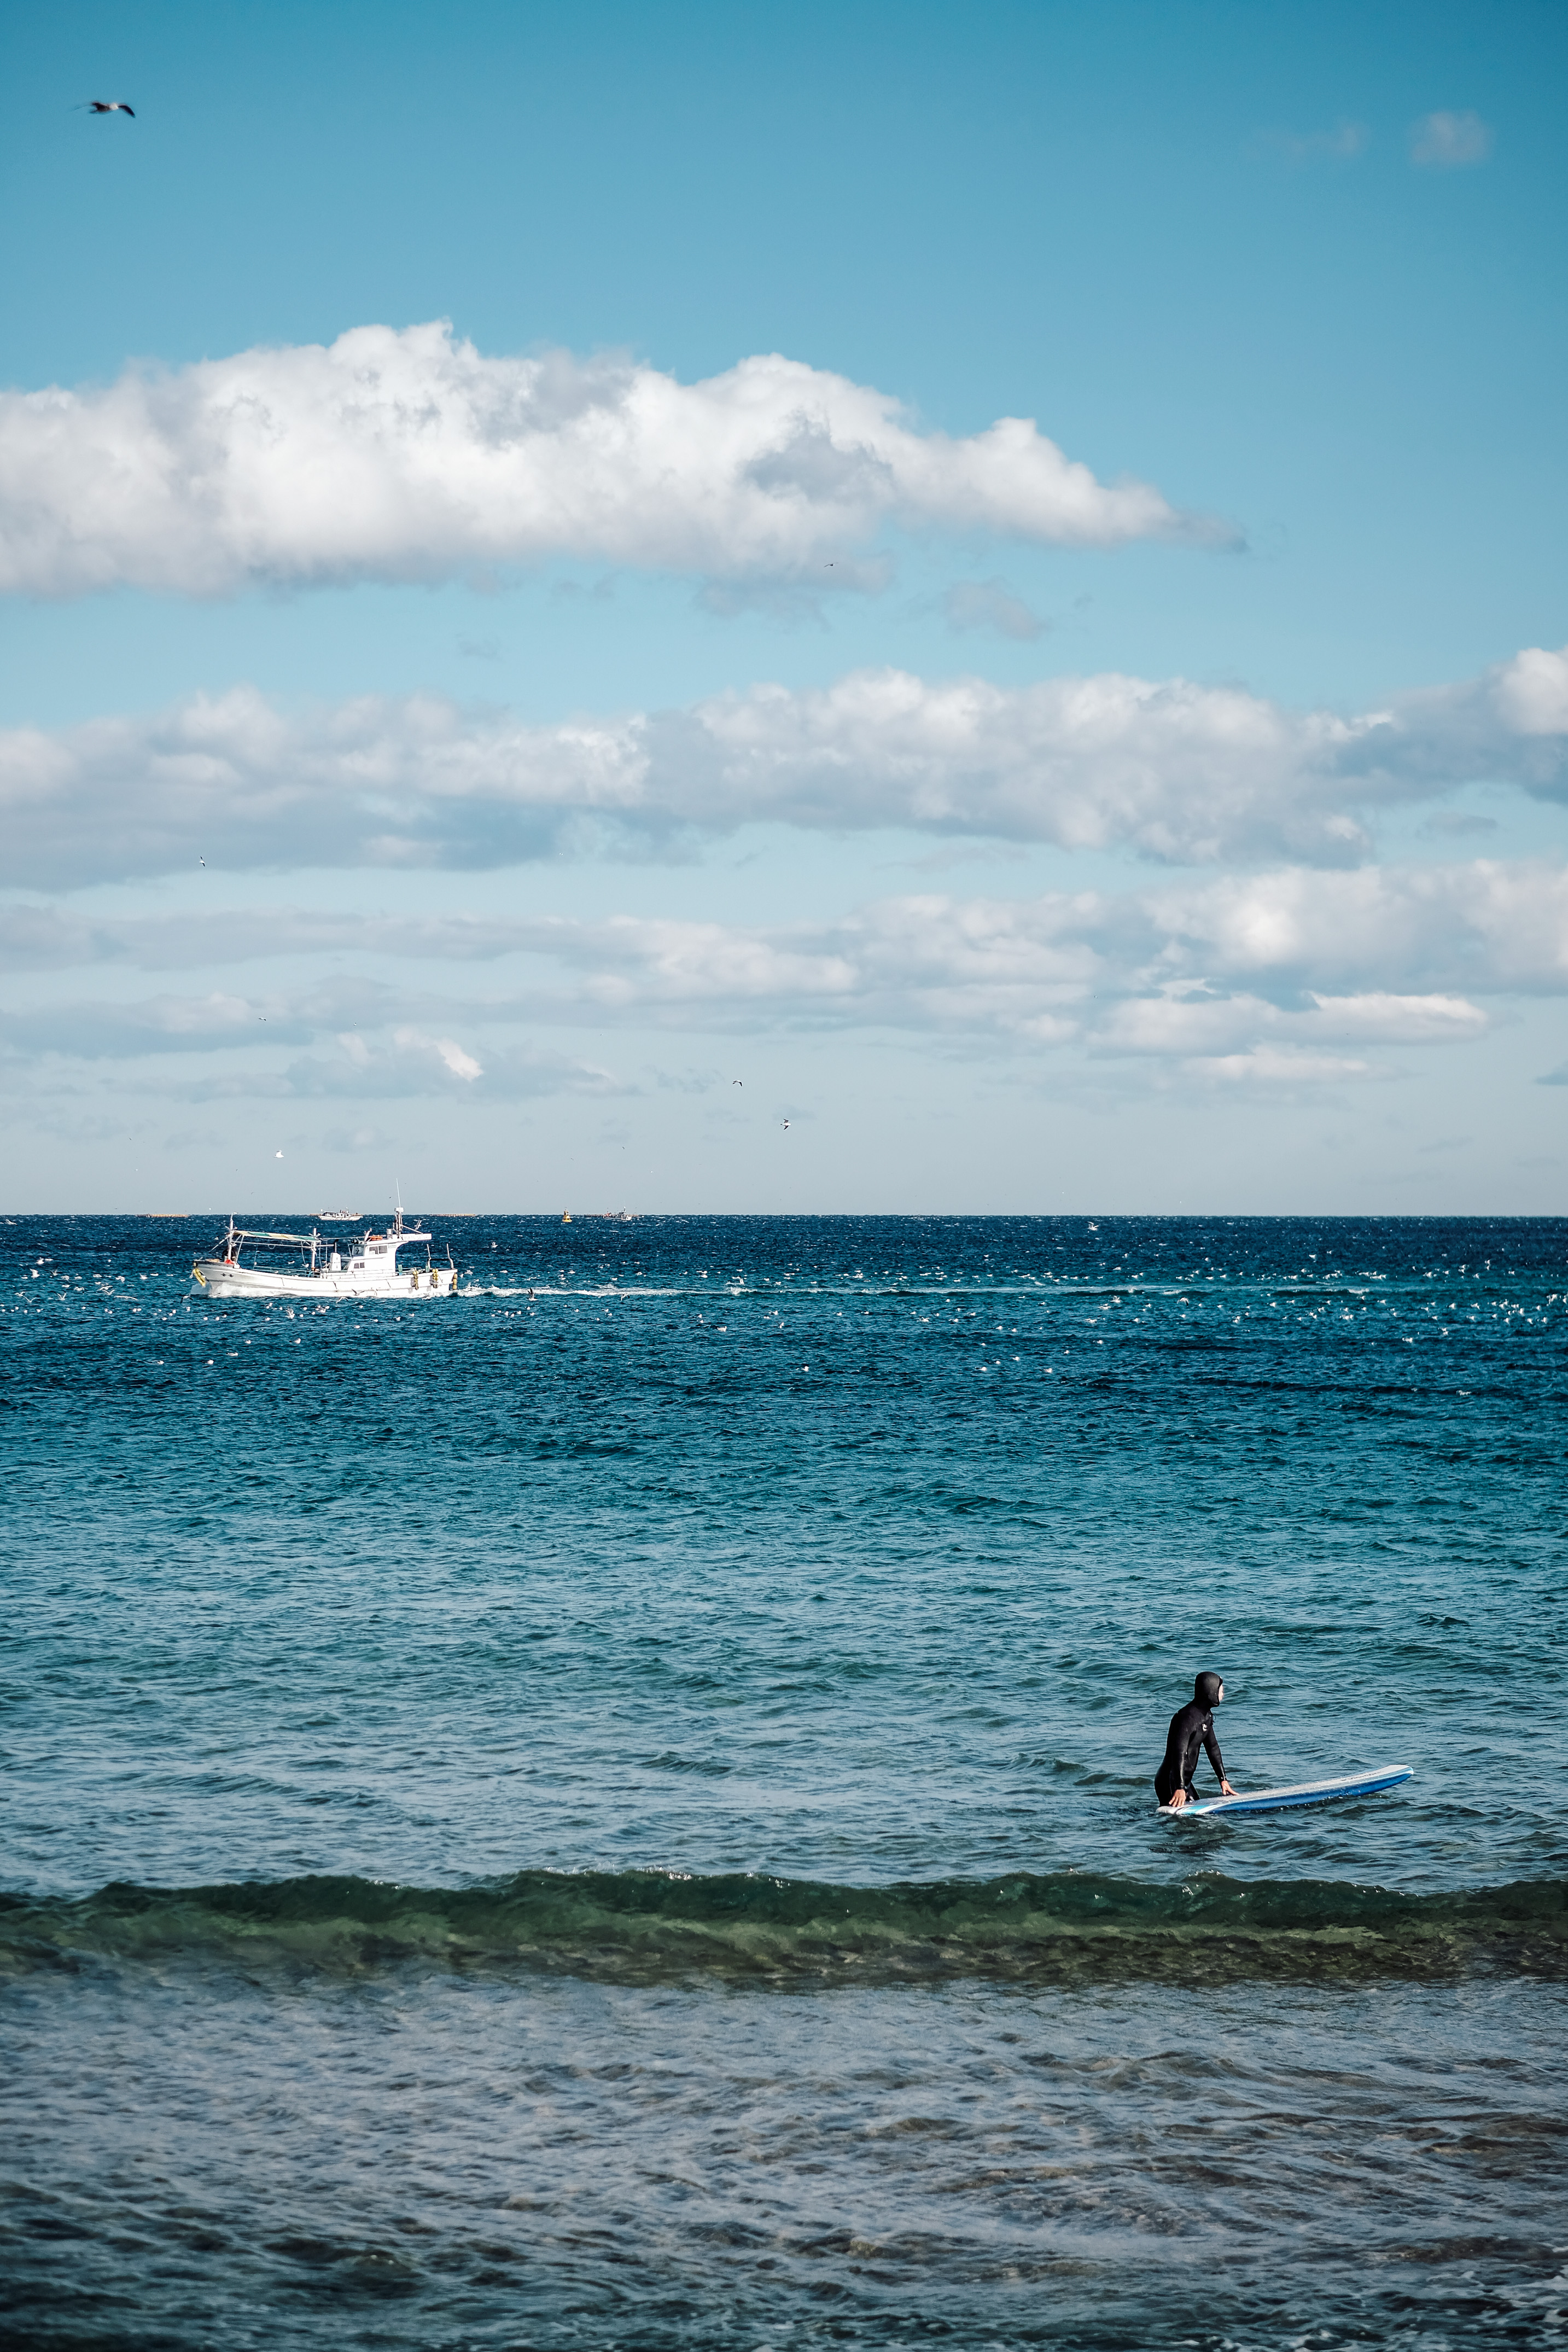 person with surfboard near boat at the ocean during day